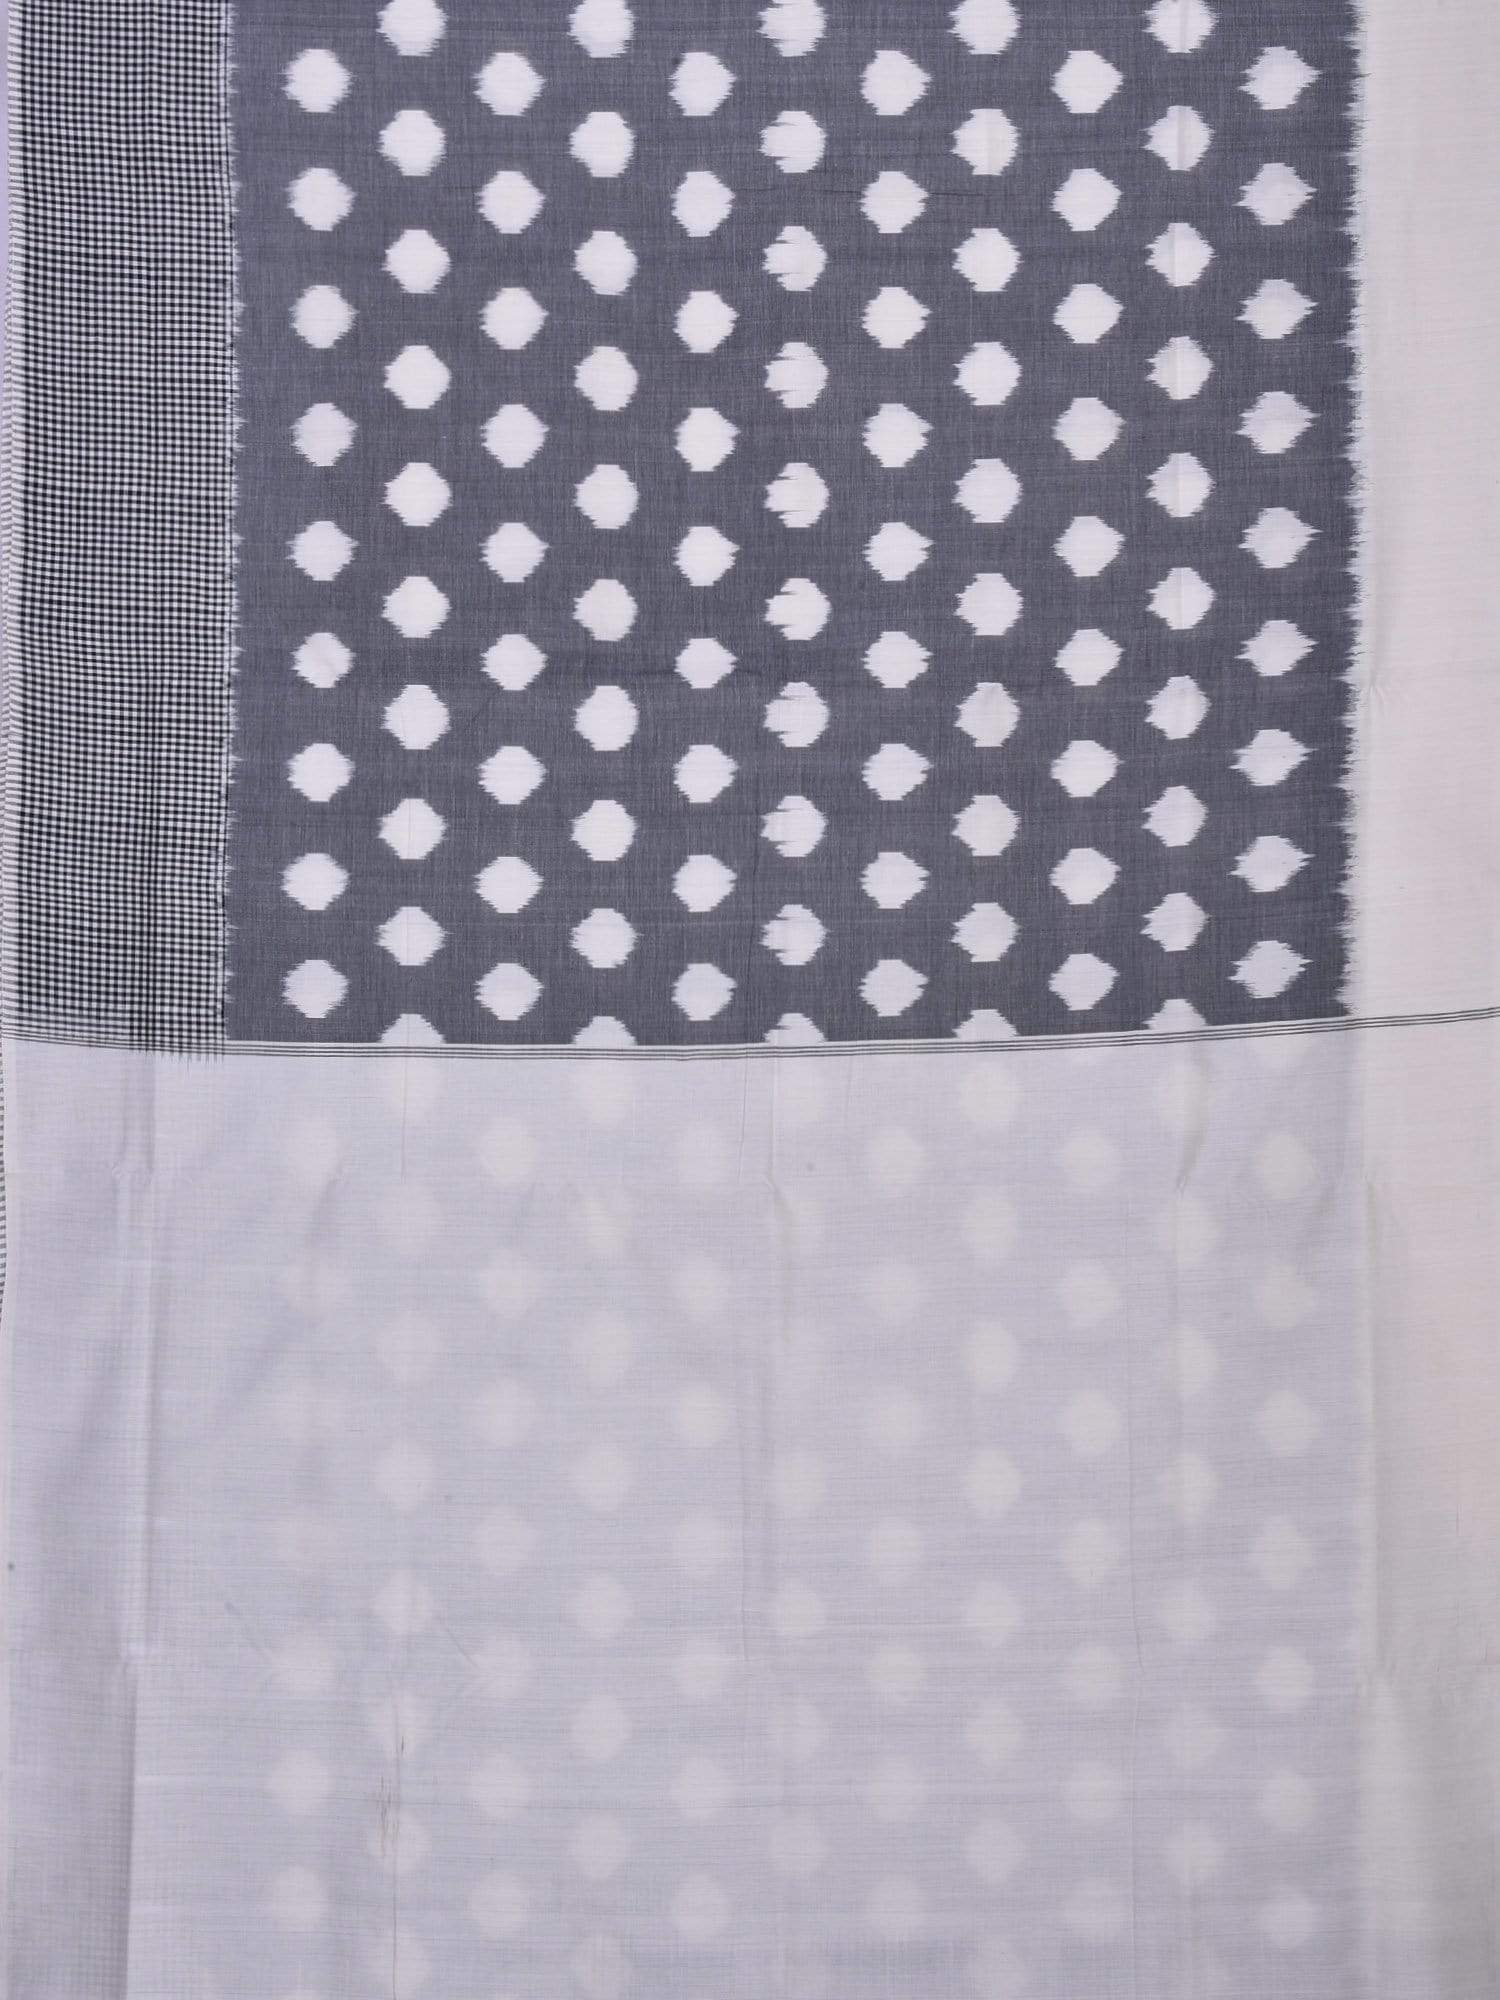 Grey Pochampally Ikat Cotton Handloom Saree with Polka Dots Design i0474